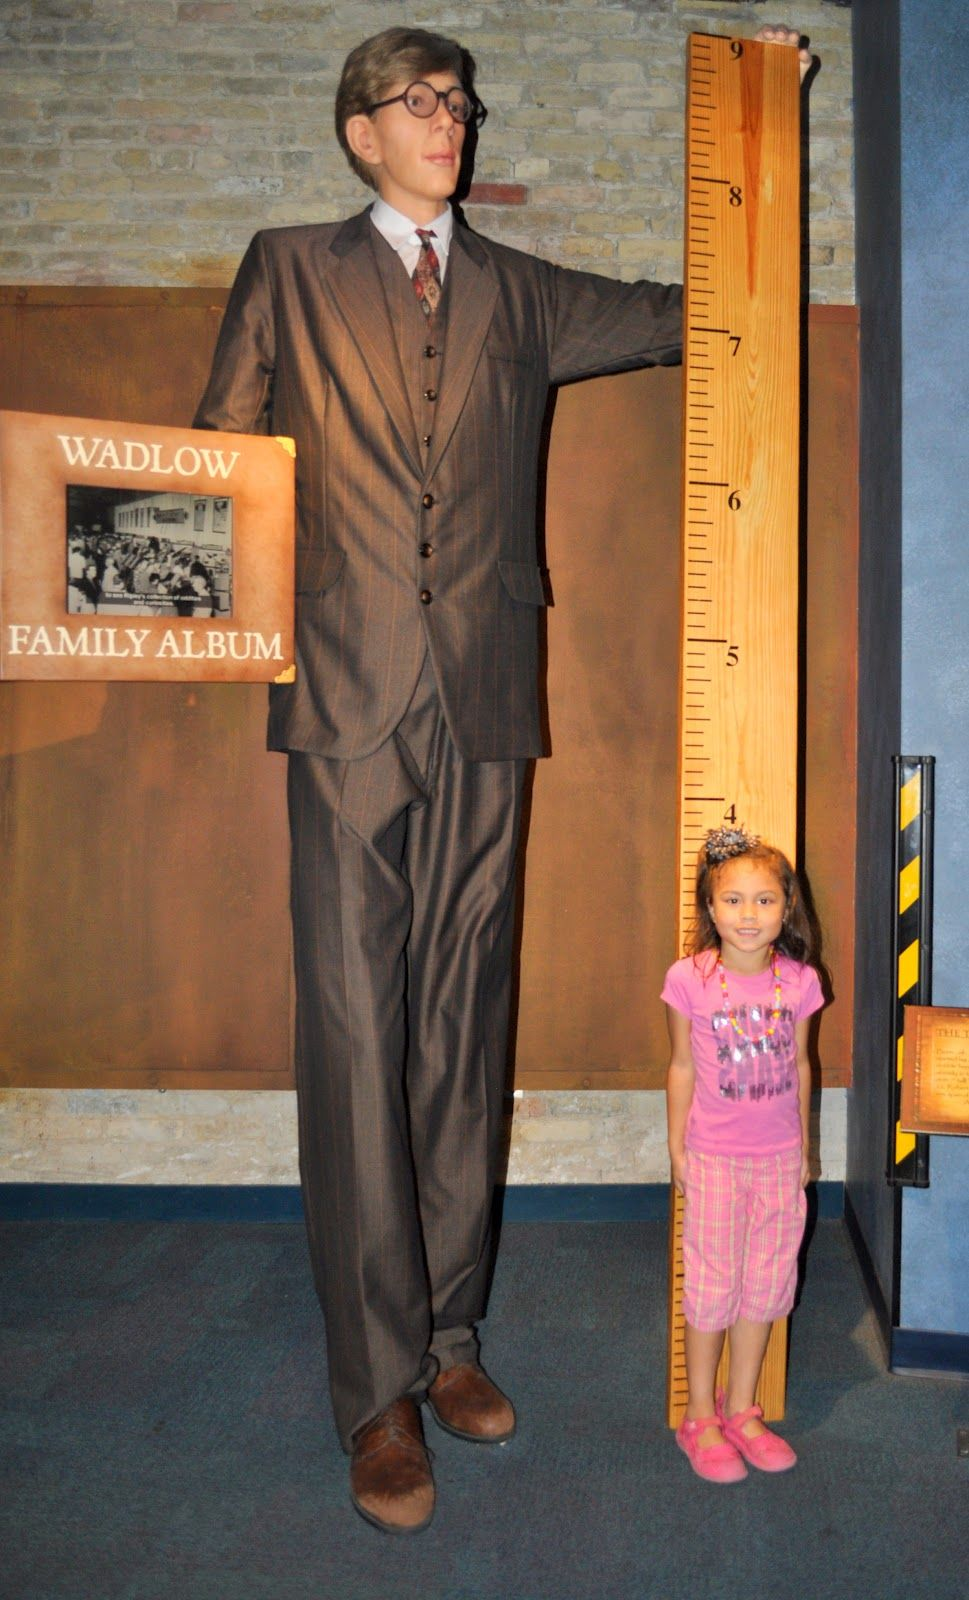 Robert Wadlow: Worlds Tallest Man Exhibit 8 feet 11 inches ...